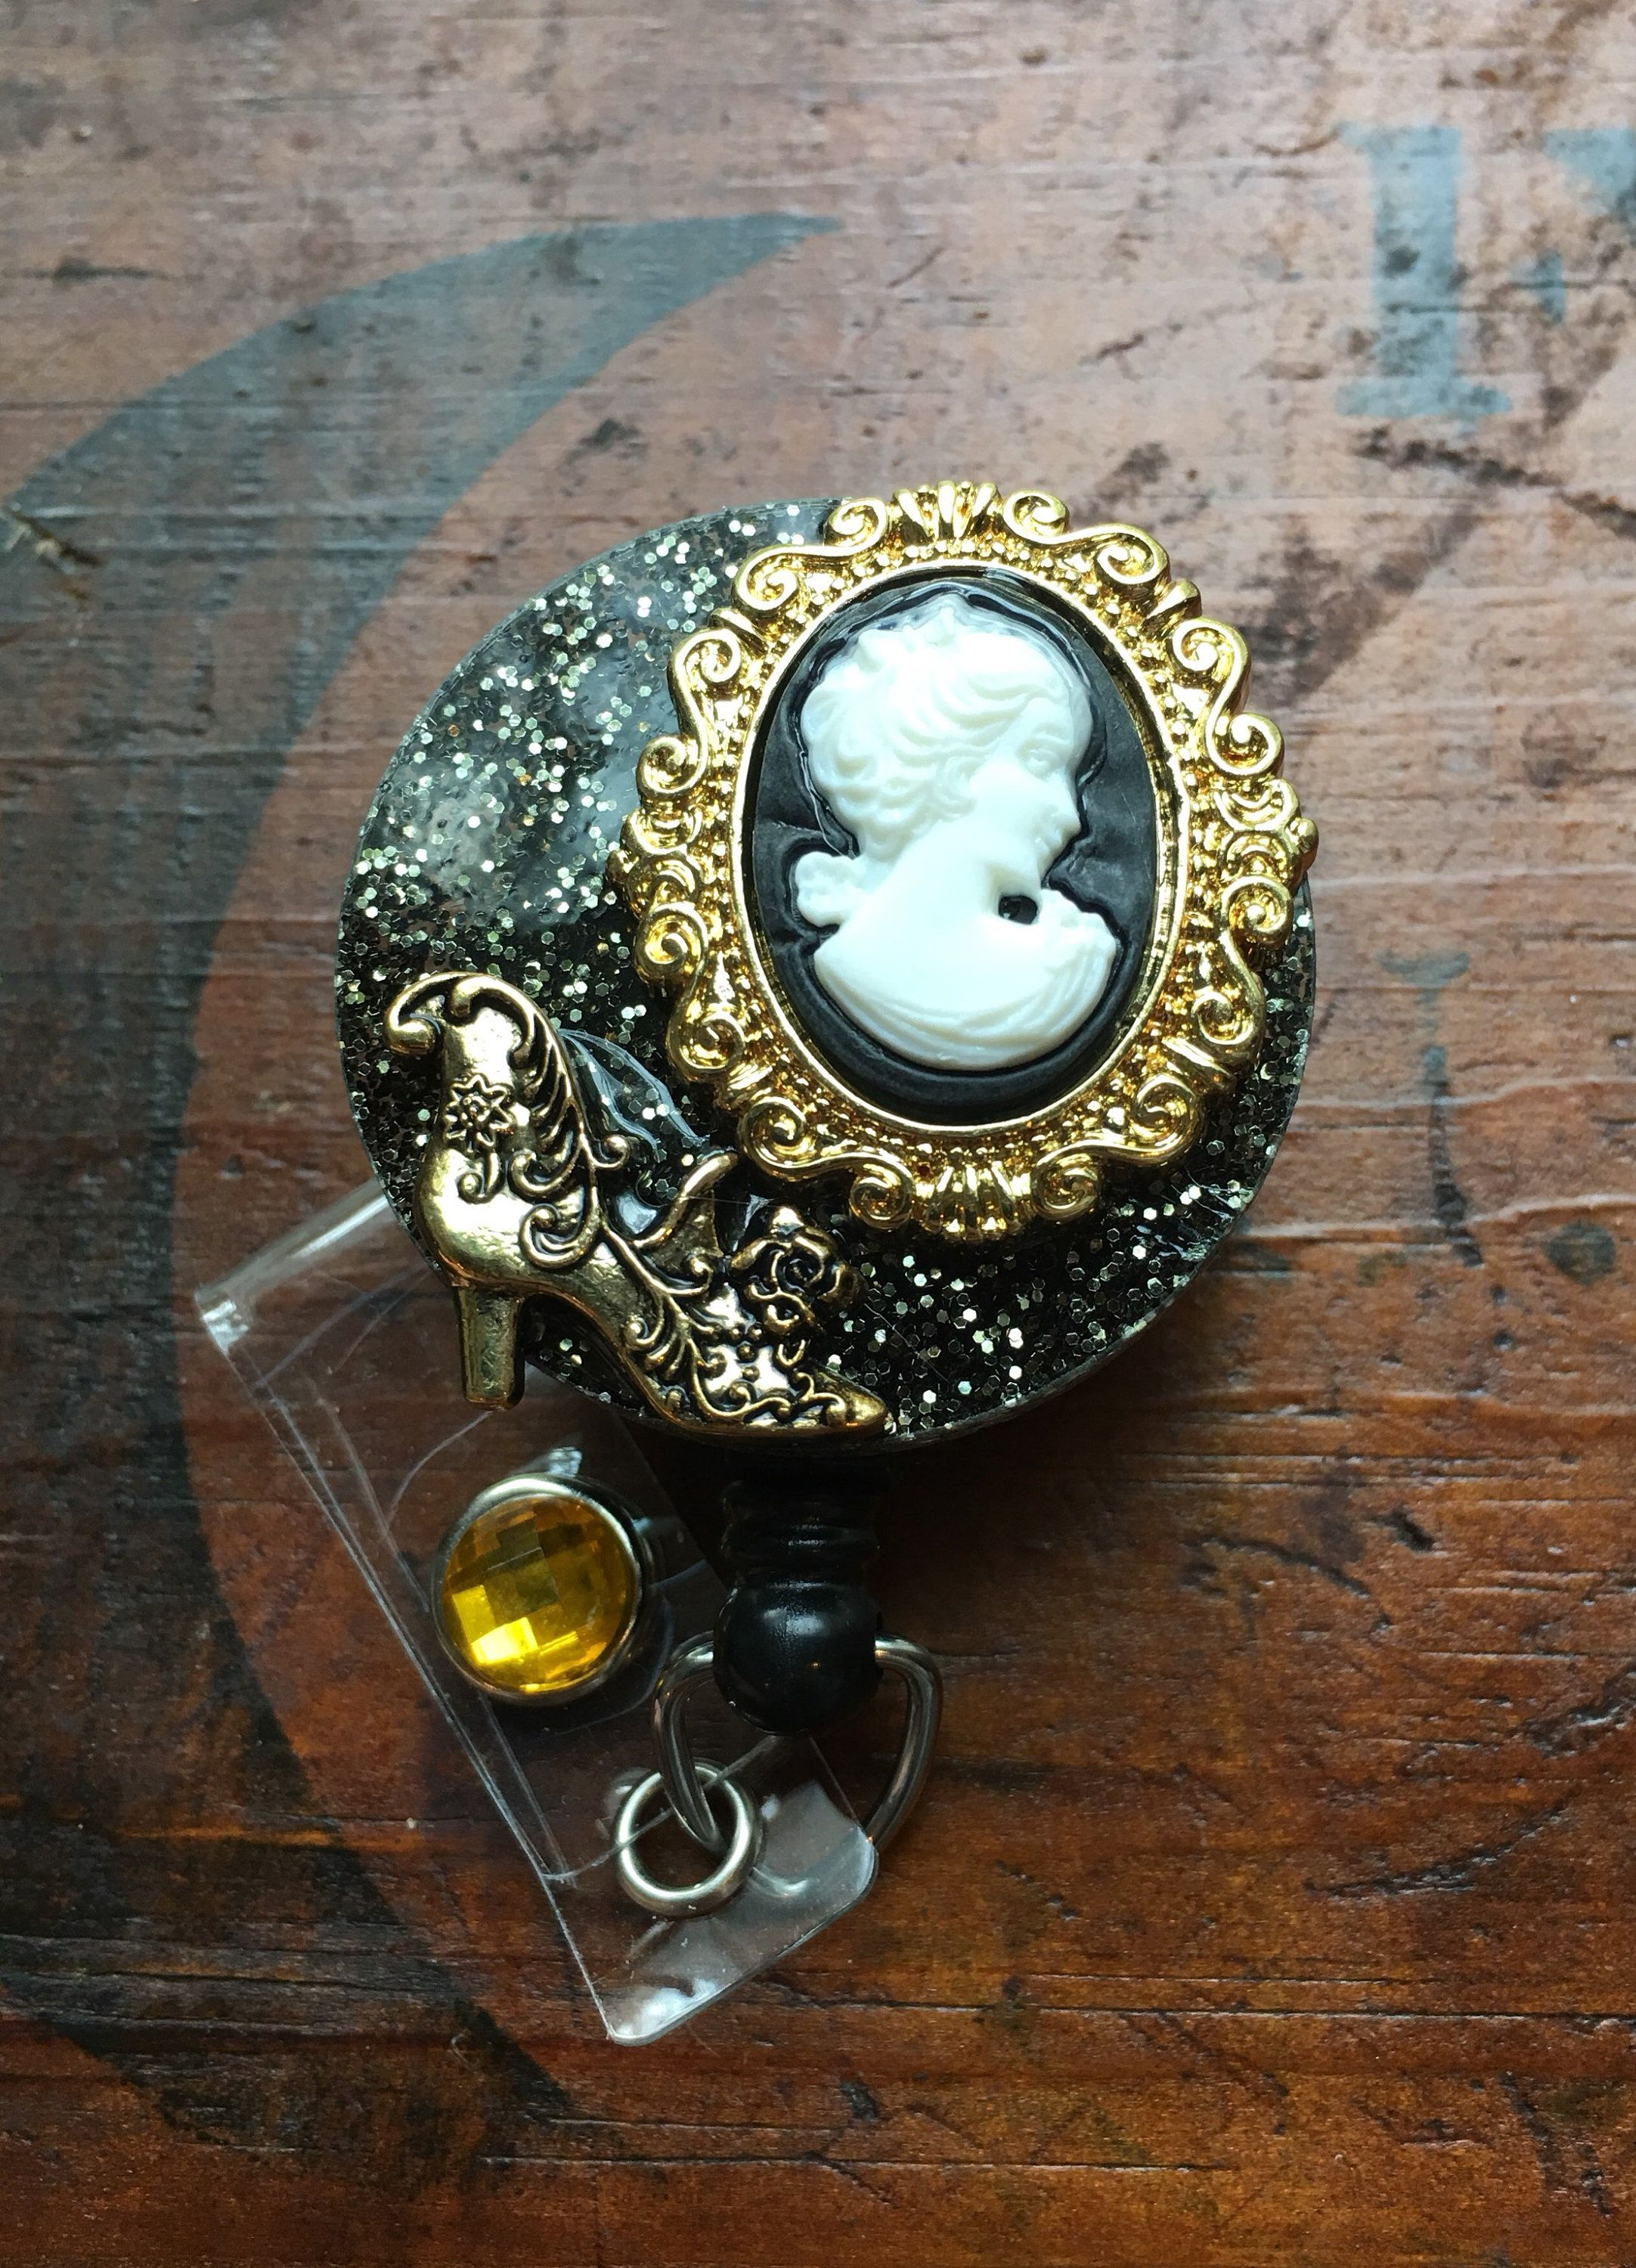 Elegant cameo id badge rn reel holder with choice of